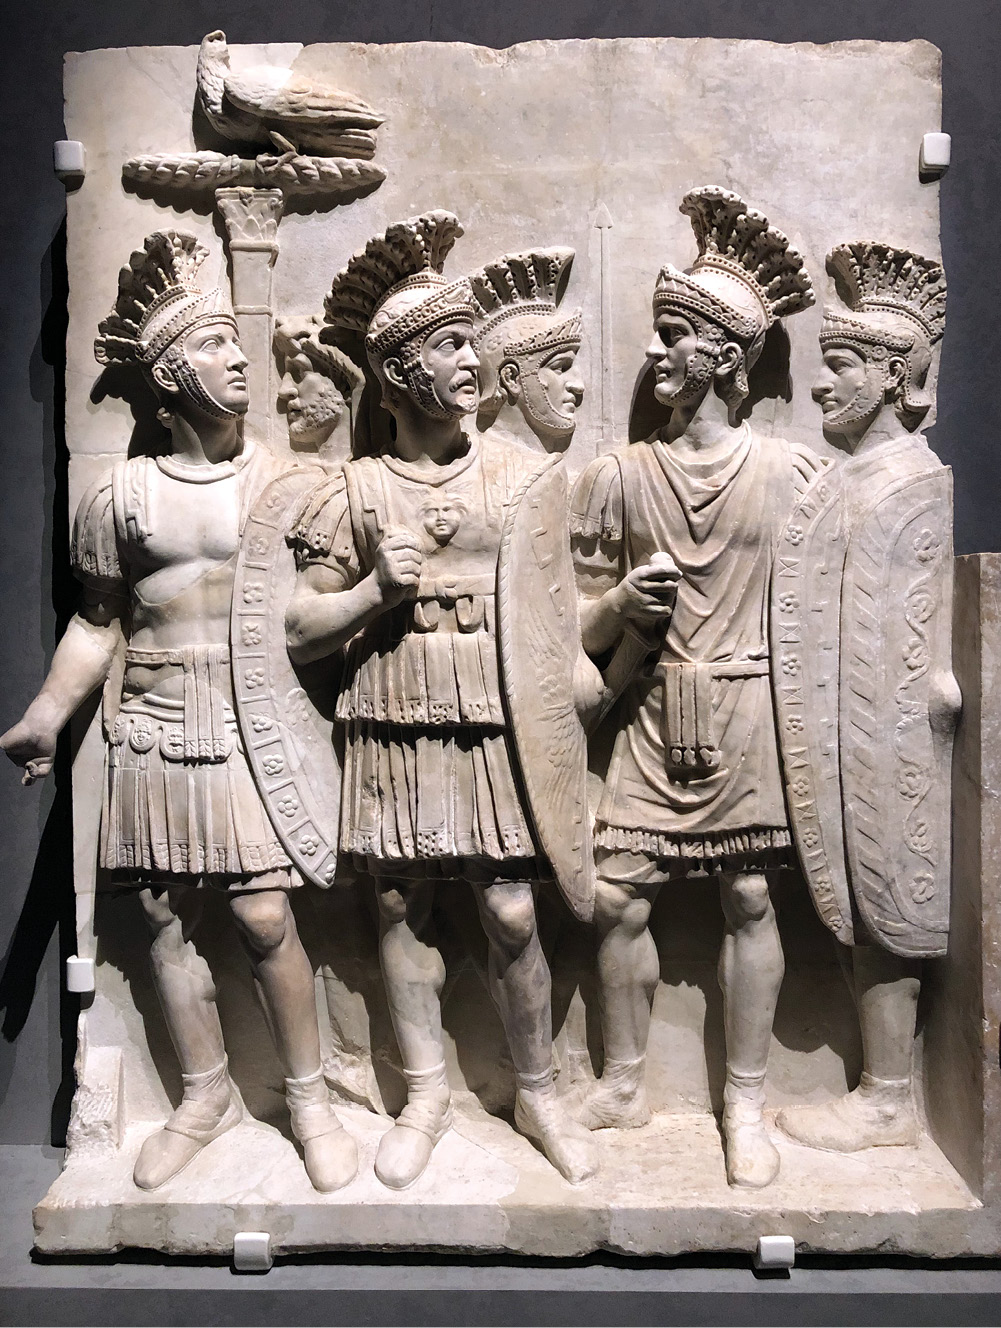 RIGHT The Praetorian Guard, as seen on the triumphal arch commemorating Claudius' invasion of Britain in AD 43. After Claudius' death, these elite soldiers swore allegiance to Nero, but did not intervene to save him in AD 68.